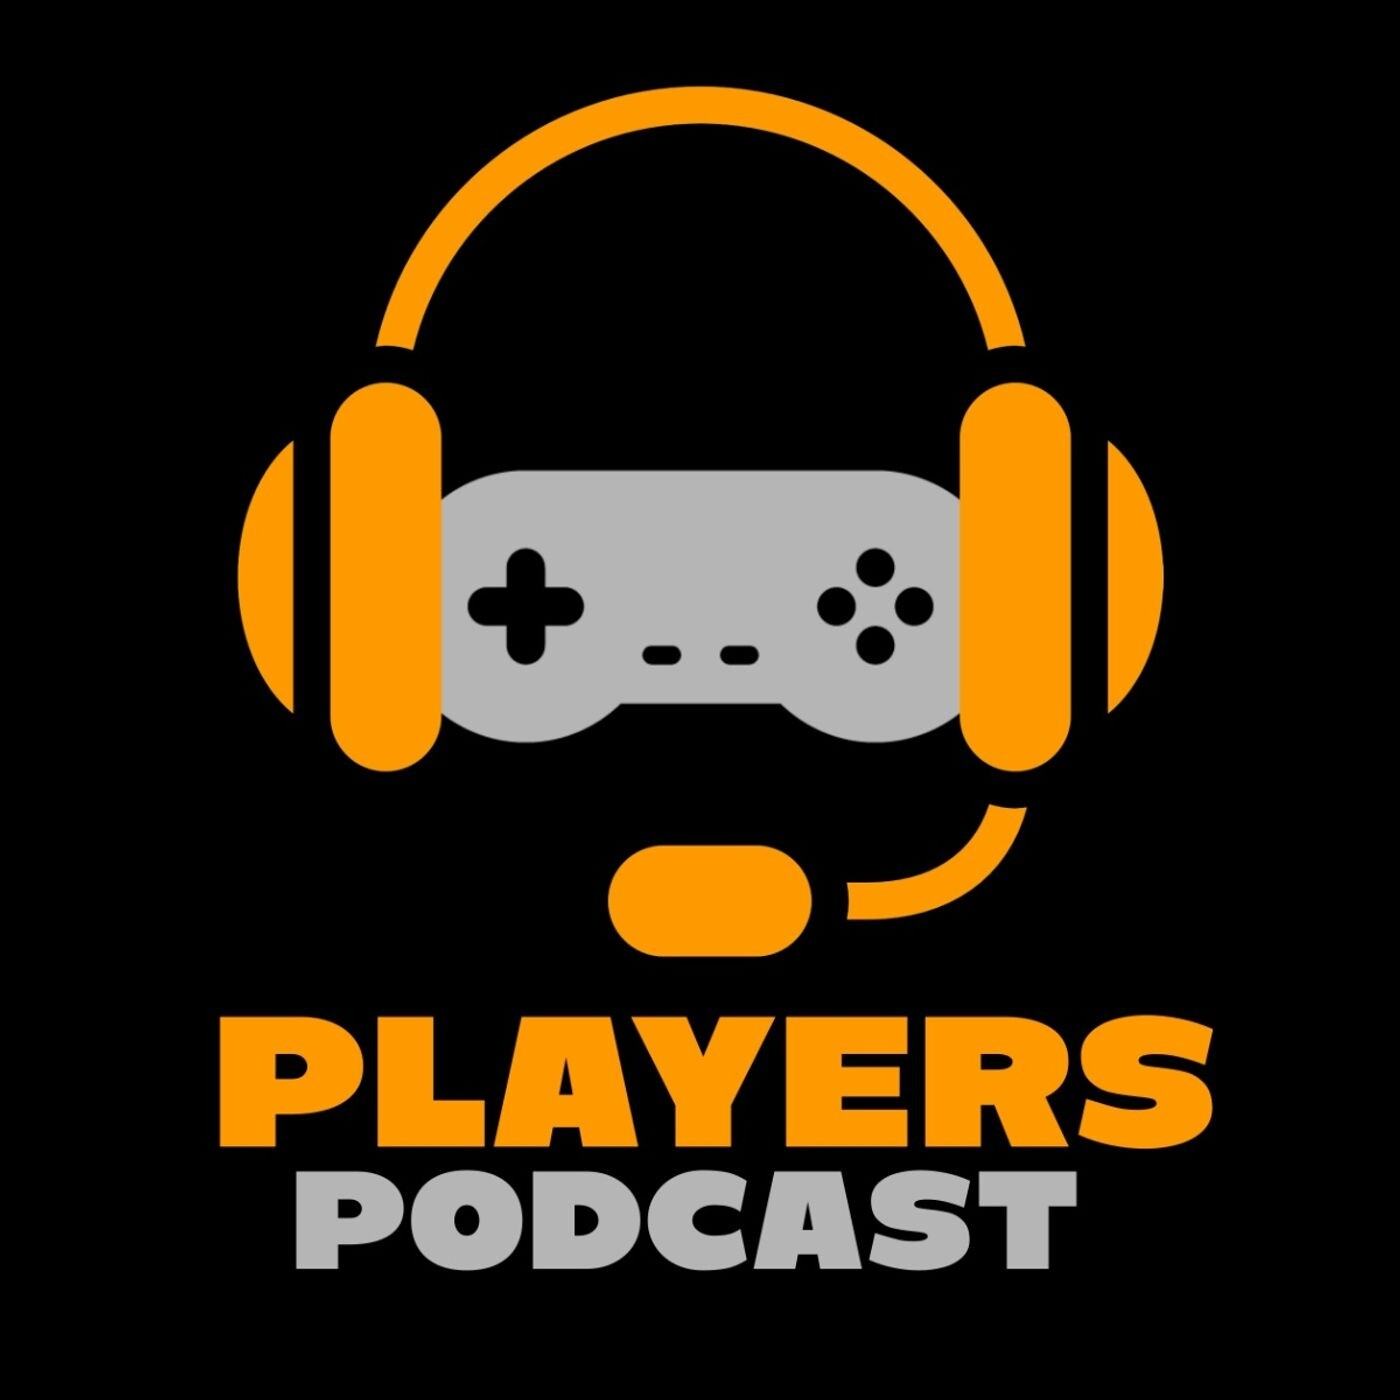 PLAYERS PODCAST